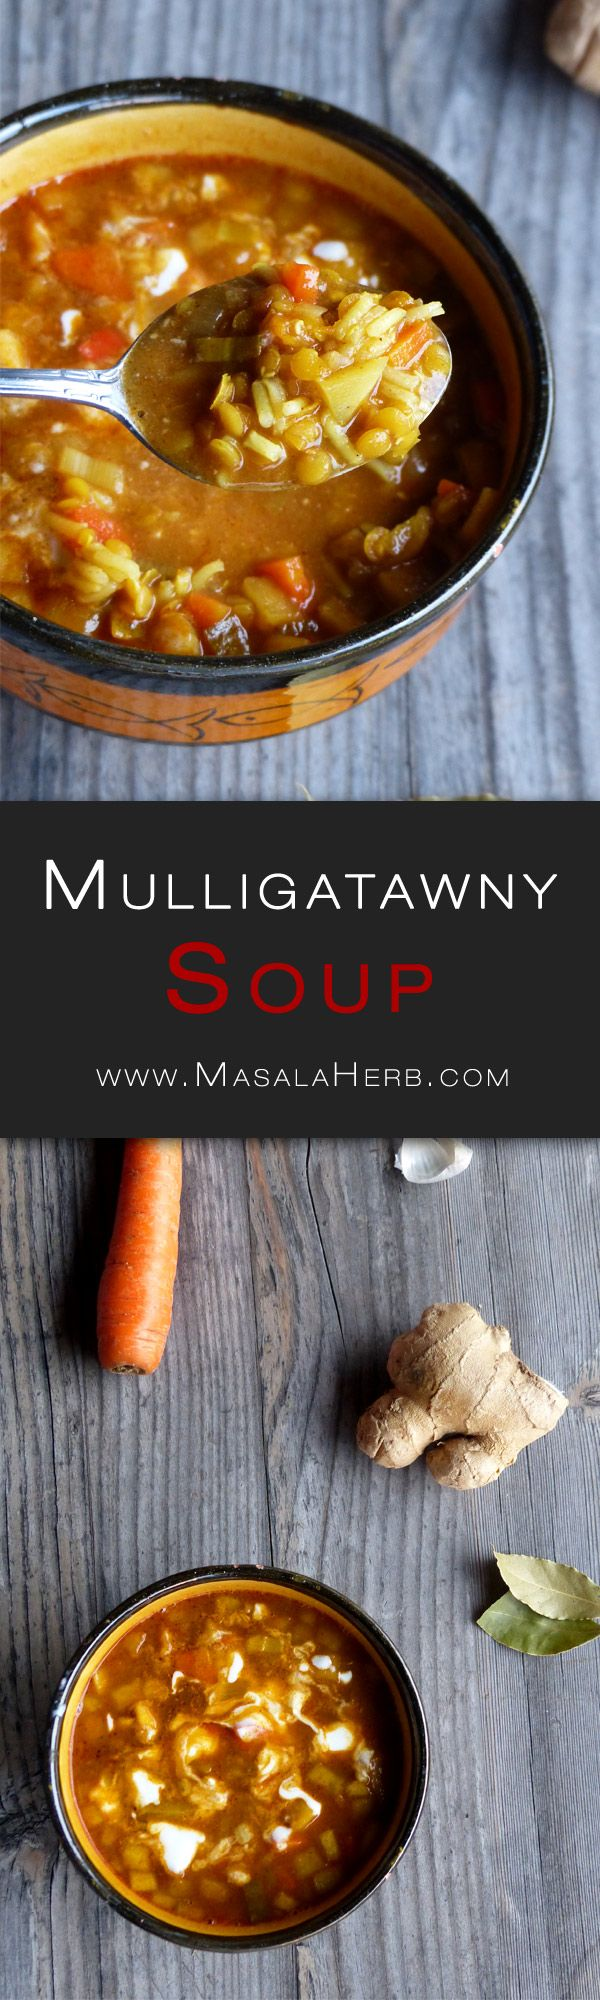 best 25 irish soup ideas on pinterest irish dinner slowcooker